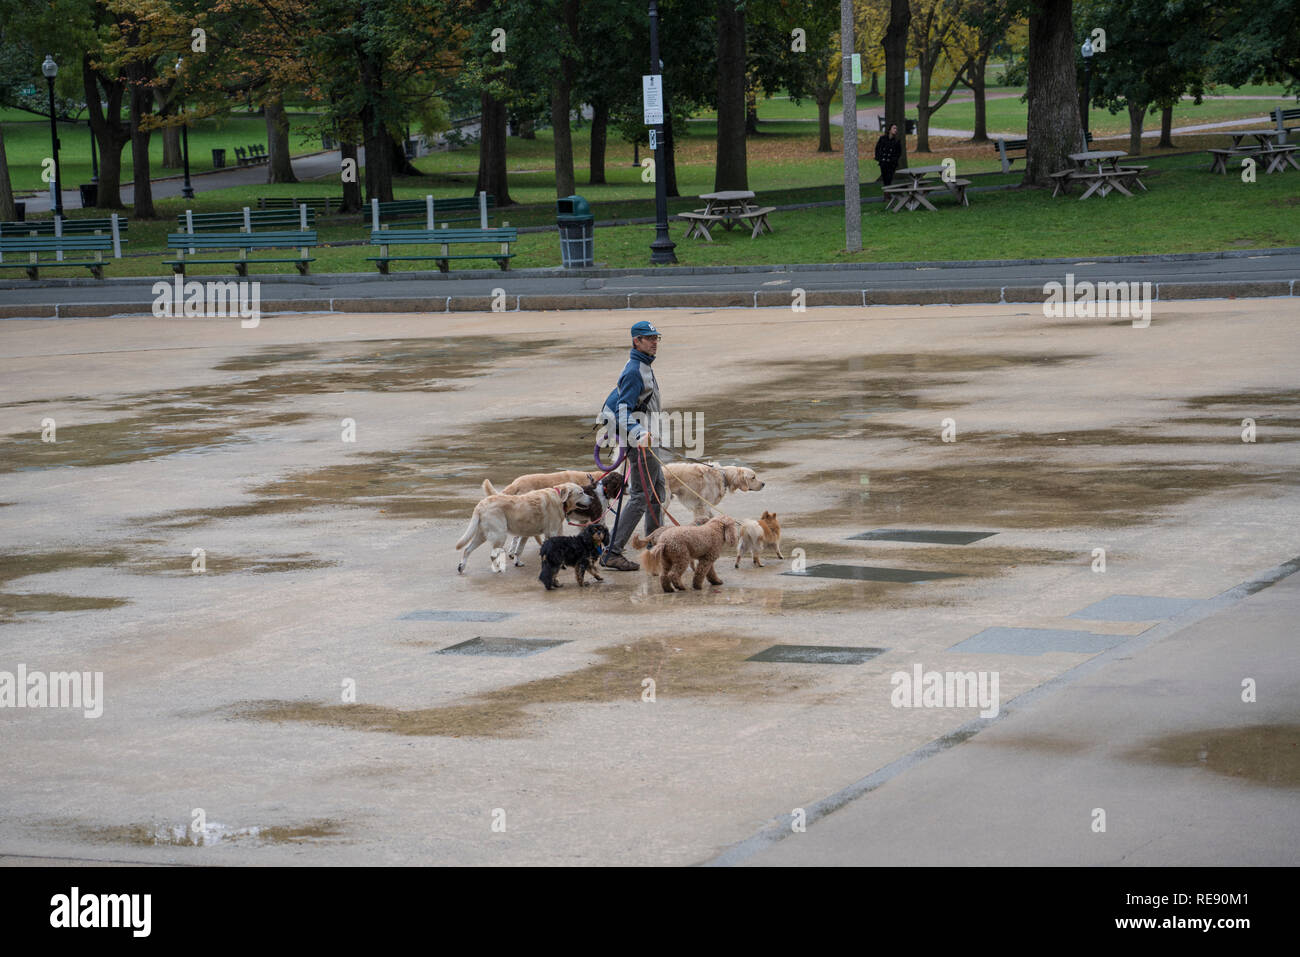 Boston, Massachusetts - October 25, 2018 - Dog walker with six dogs in park - Stock Image